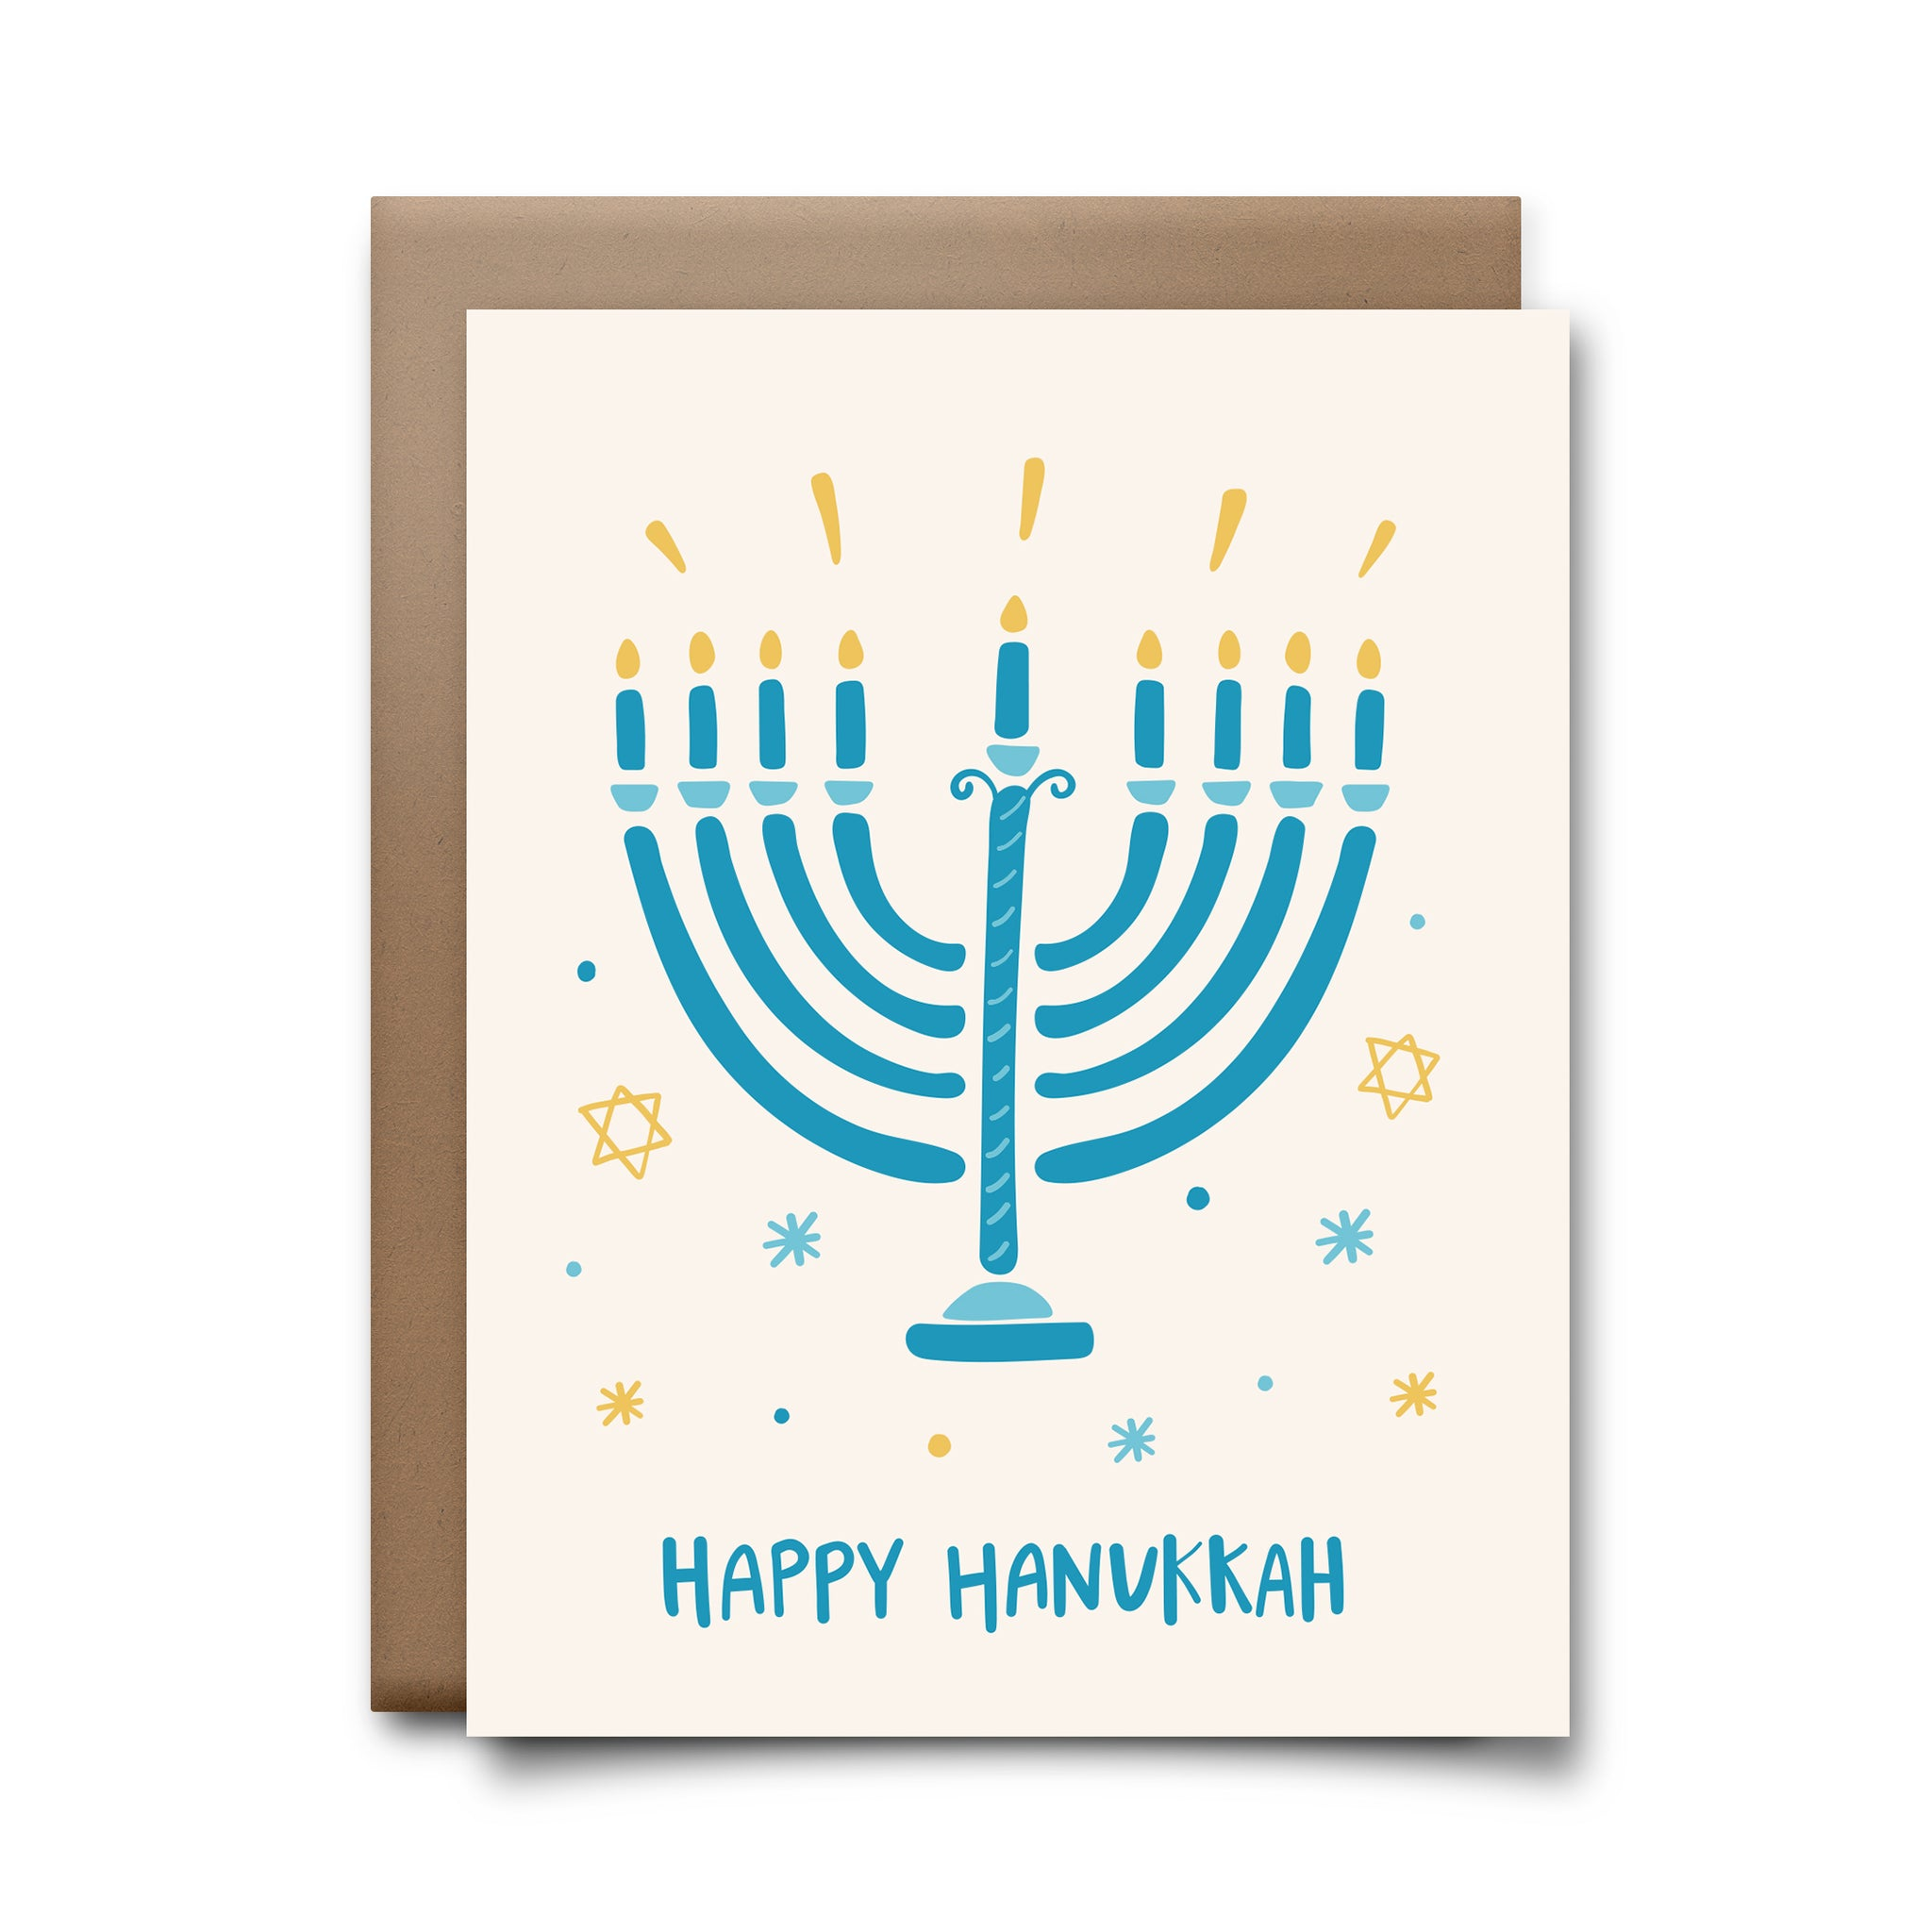 Hanukkah greeting card choke shirt company hanukkah greeting card m4hsunfo